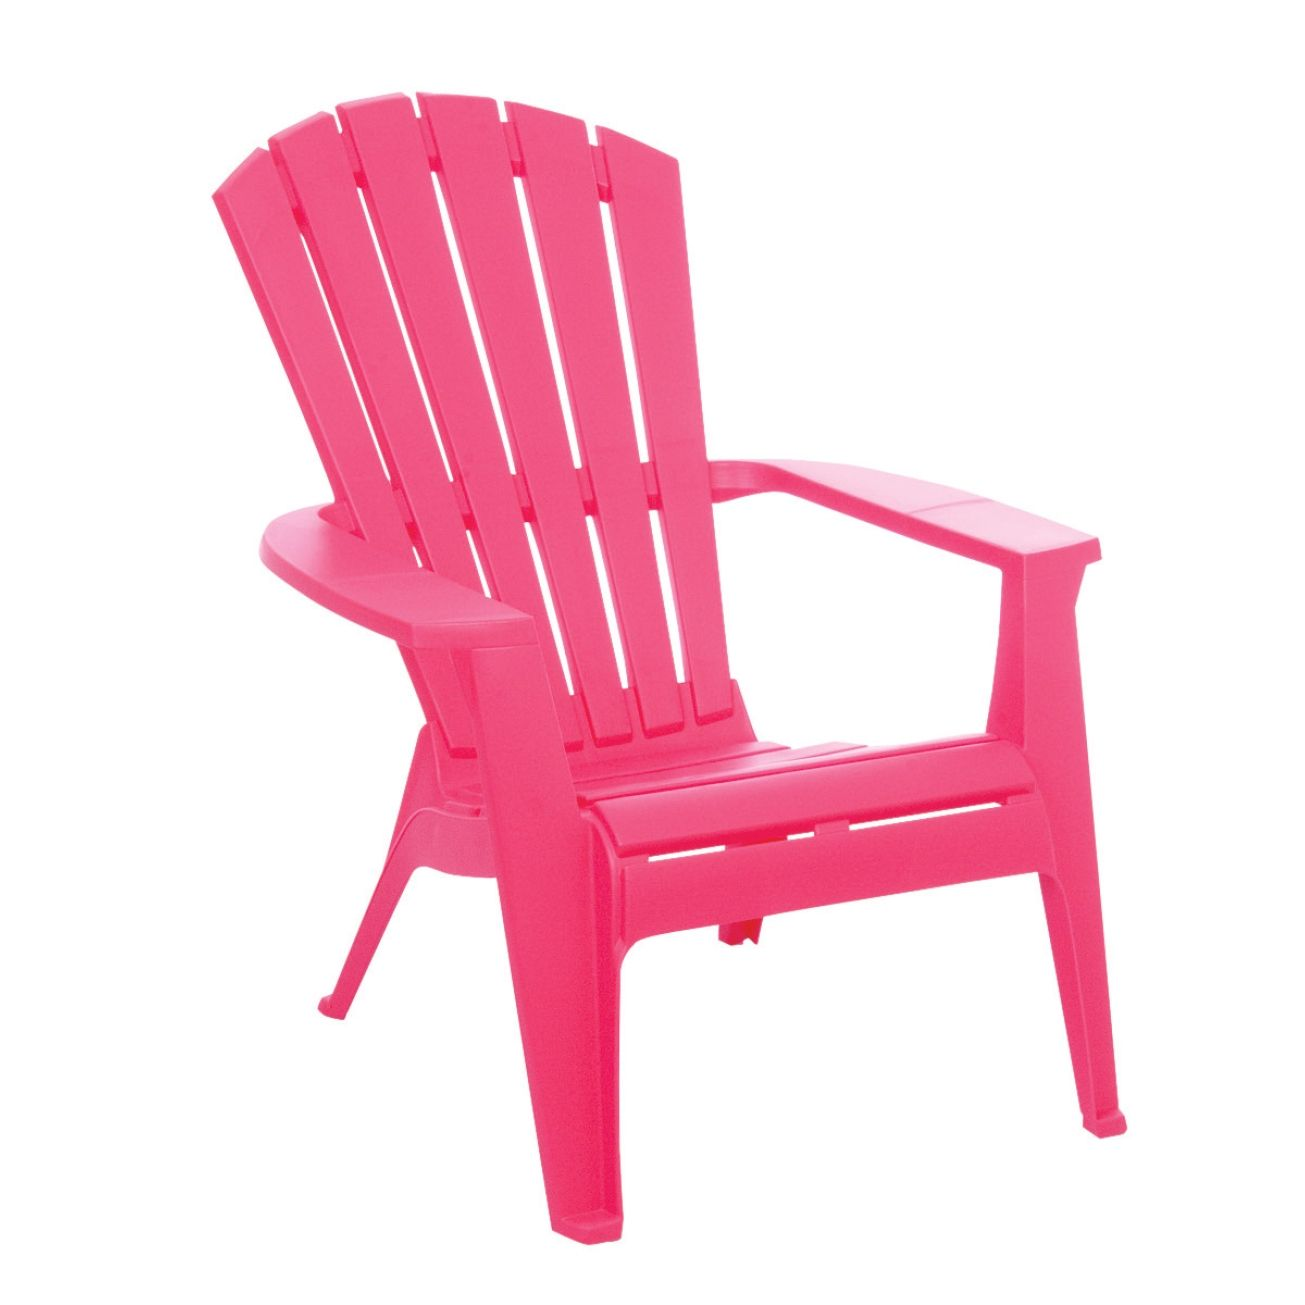 Adams Resin Adirondack Chairs 24 99 Adams Adirondack Stacking Chair In Pink 8370 07